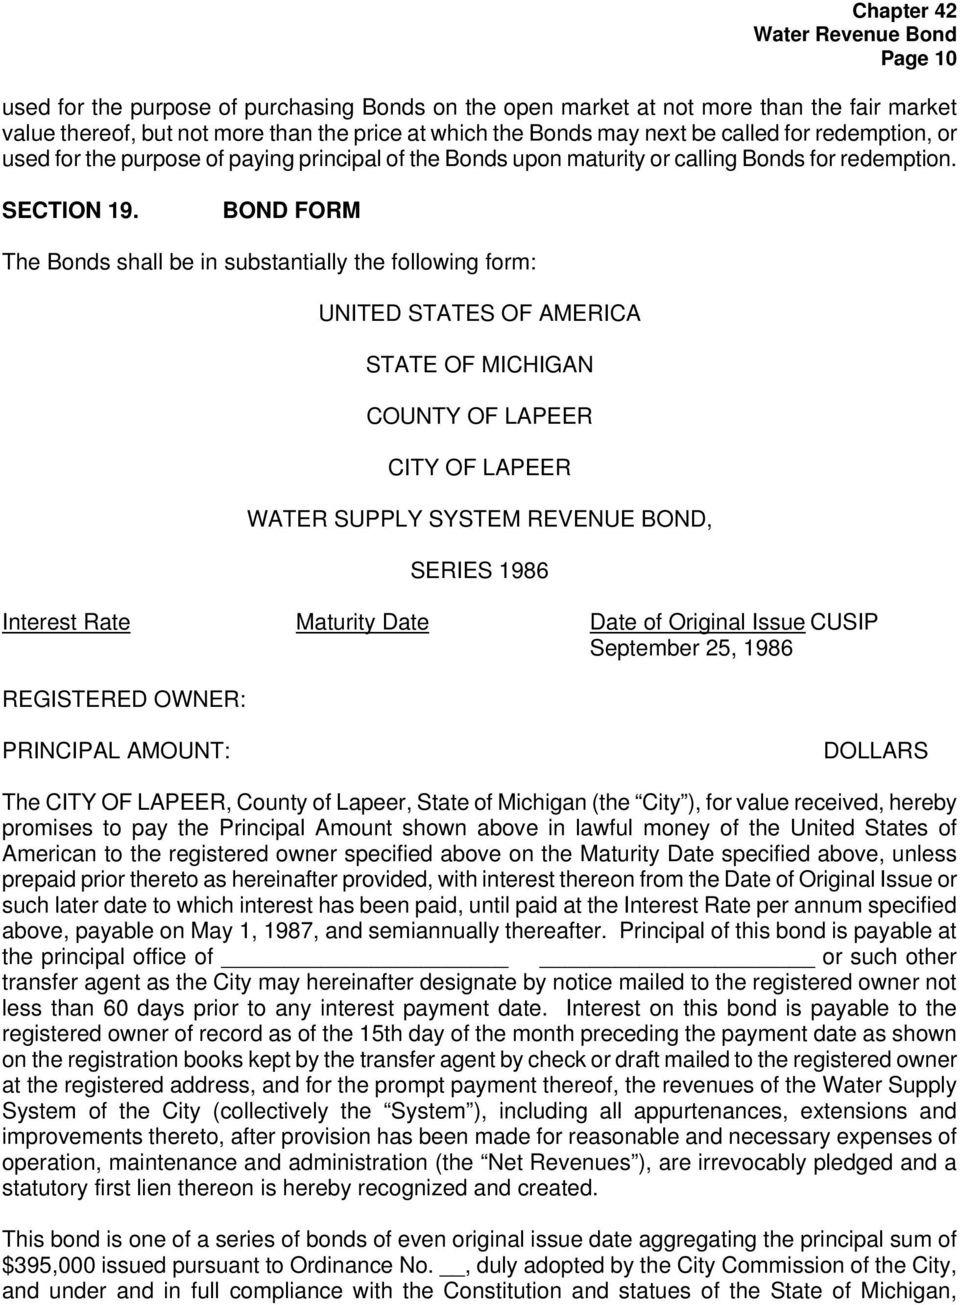 BOND FORM The Bonds shall be in substantially the following form: UNITED STATES OF AMERICA STATE OF MICHIGAN COUNTY OF LAPEER CITY OF LAPEER WATER SUPPLY SYSTEM REVENUE BOND, SERIES 1986 Interest